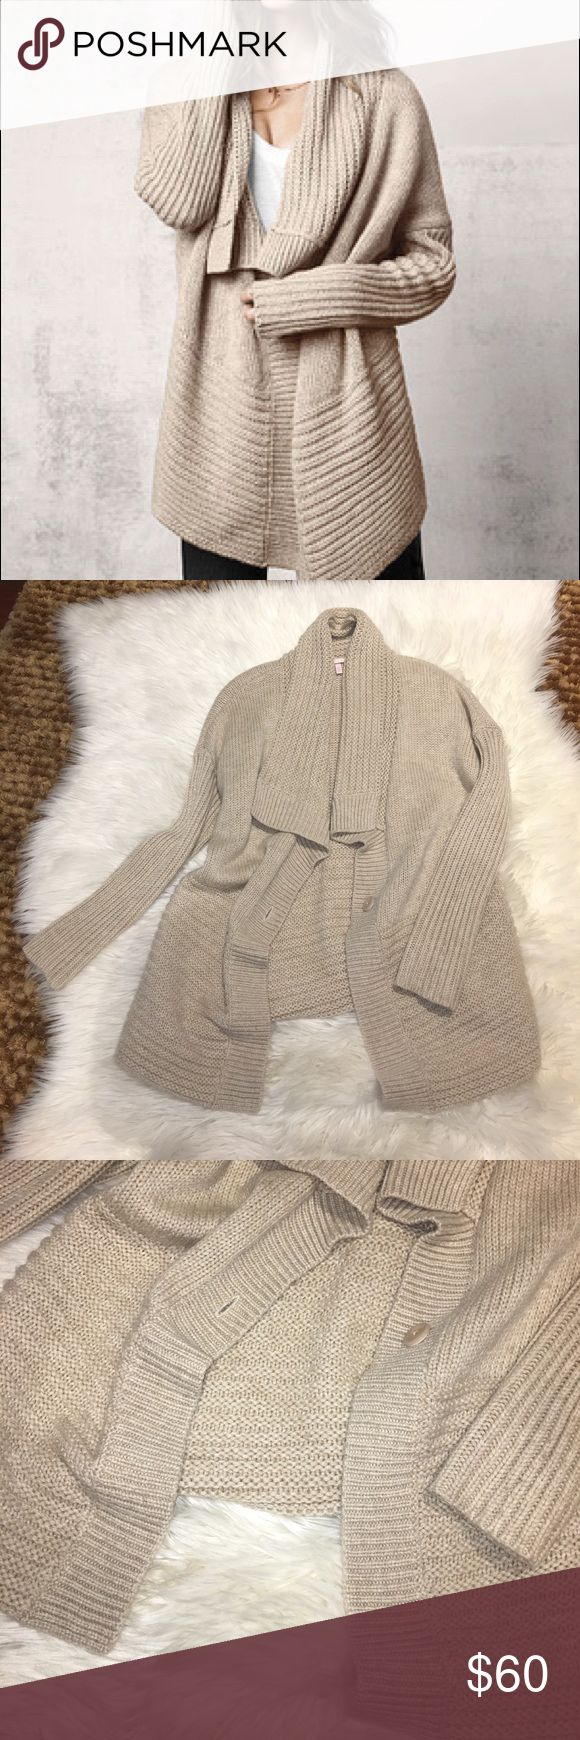 NEW Victoria's Secret Tan Cardigan size Medium ‼️New Never Worn  ‼️Size Medium  ‼️Comfy feel  ‼️Warm feel  ‼️Cute Style  ❌No Trades ✅Offers Victoria's Secret Sweaters Cardigans